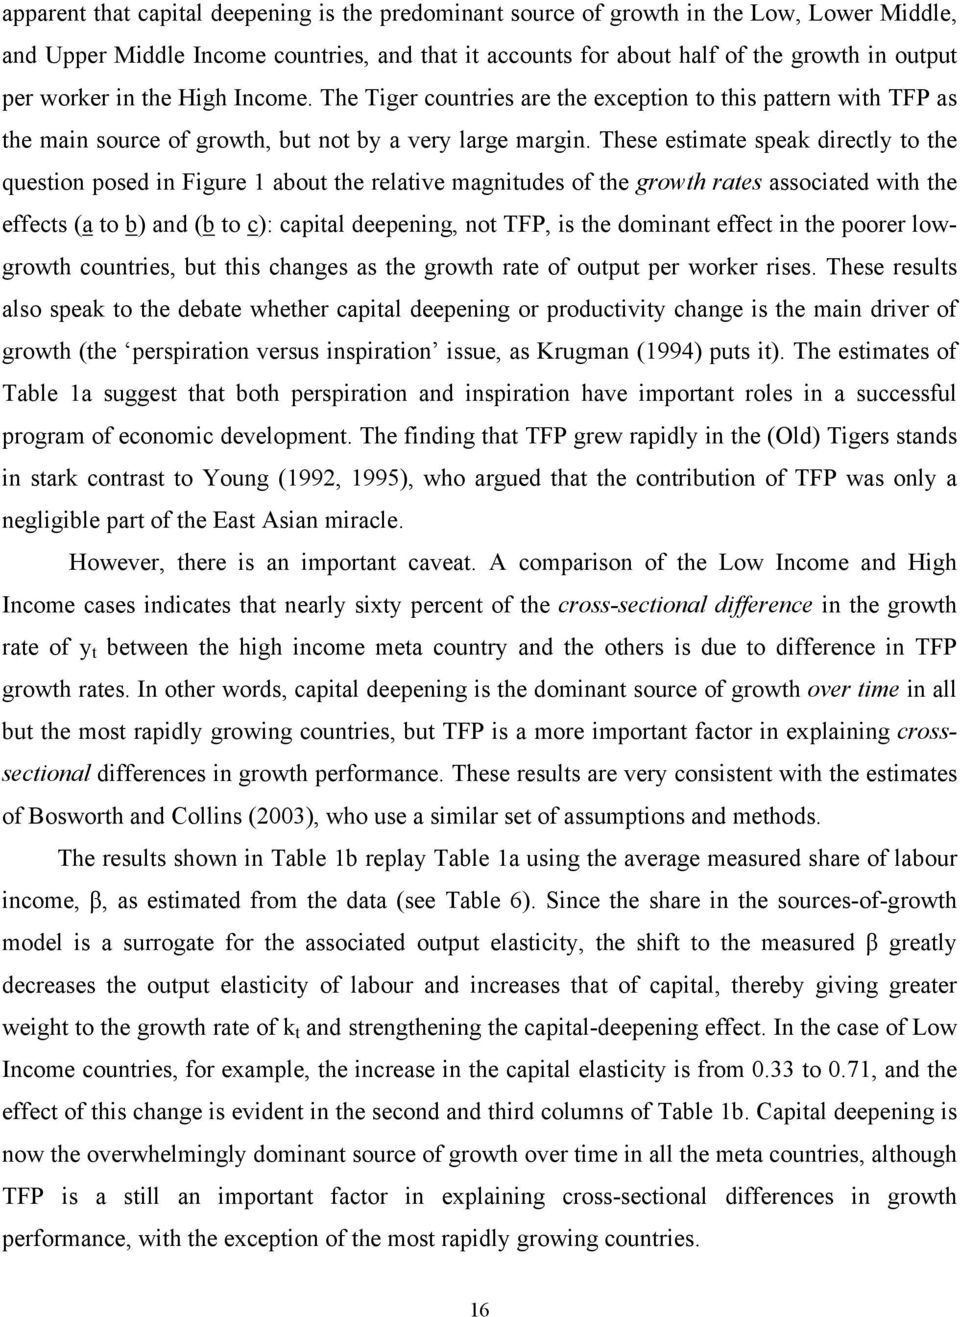 These estimate speak directly to the question posed in Figure 1 about the relative magnitudes of the growth rates associated with the effects (a to b) and (b to c): capital deepening, not TFP, is the